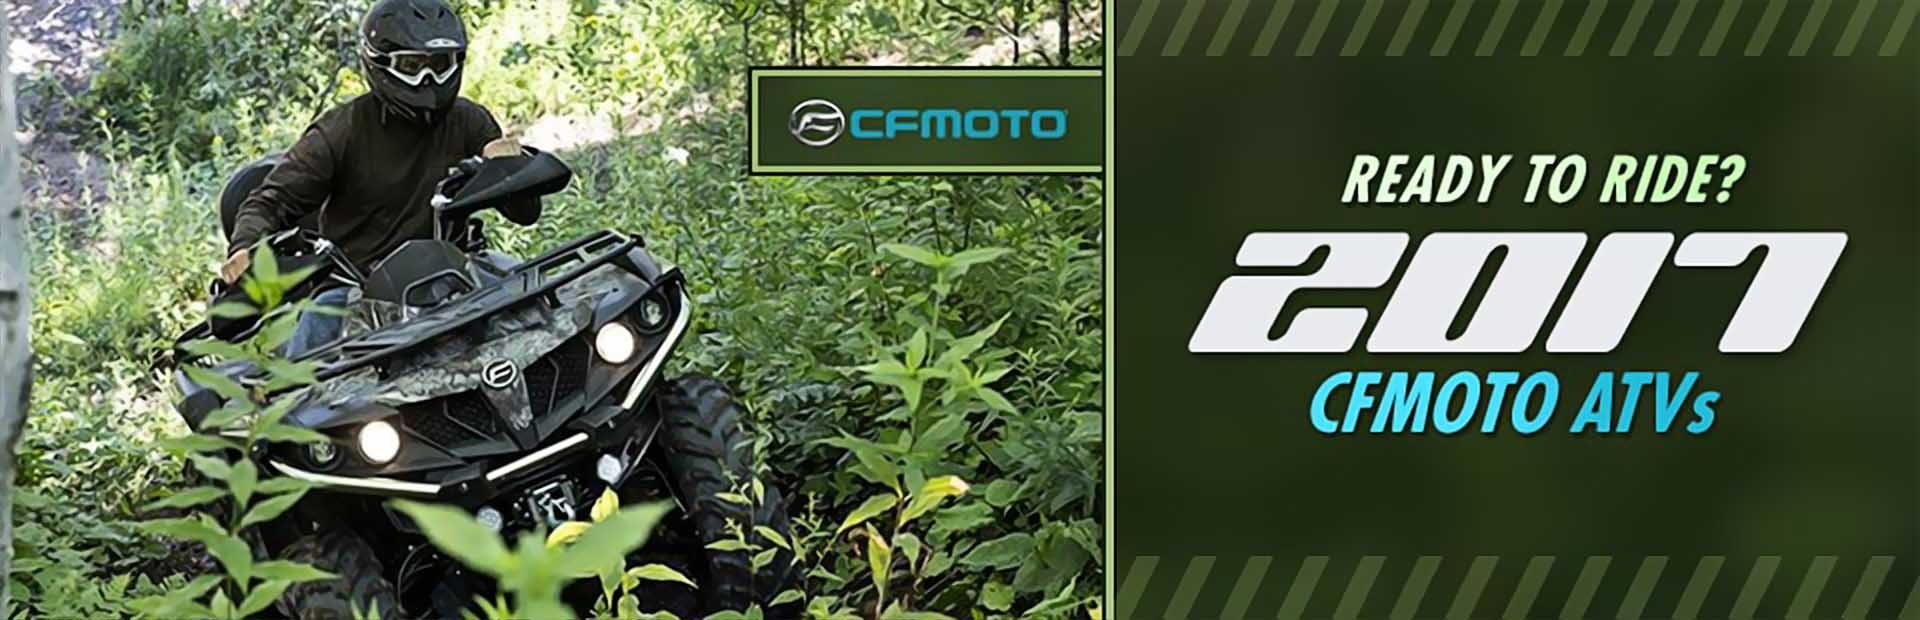 Ready to ride? Click here to view our 2017 CFMOTO ATVs.